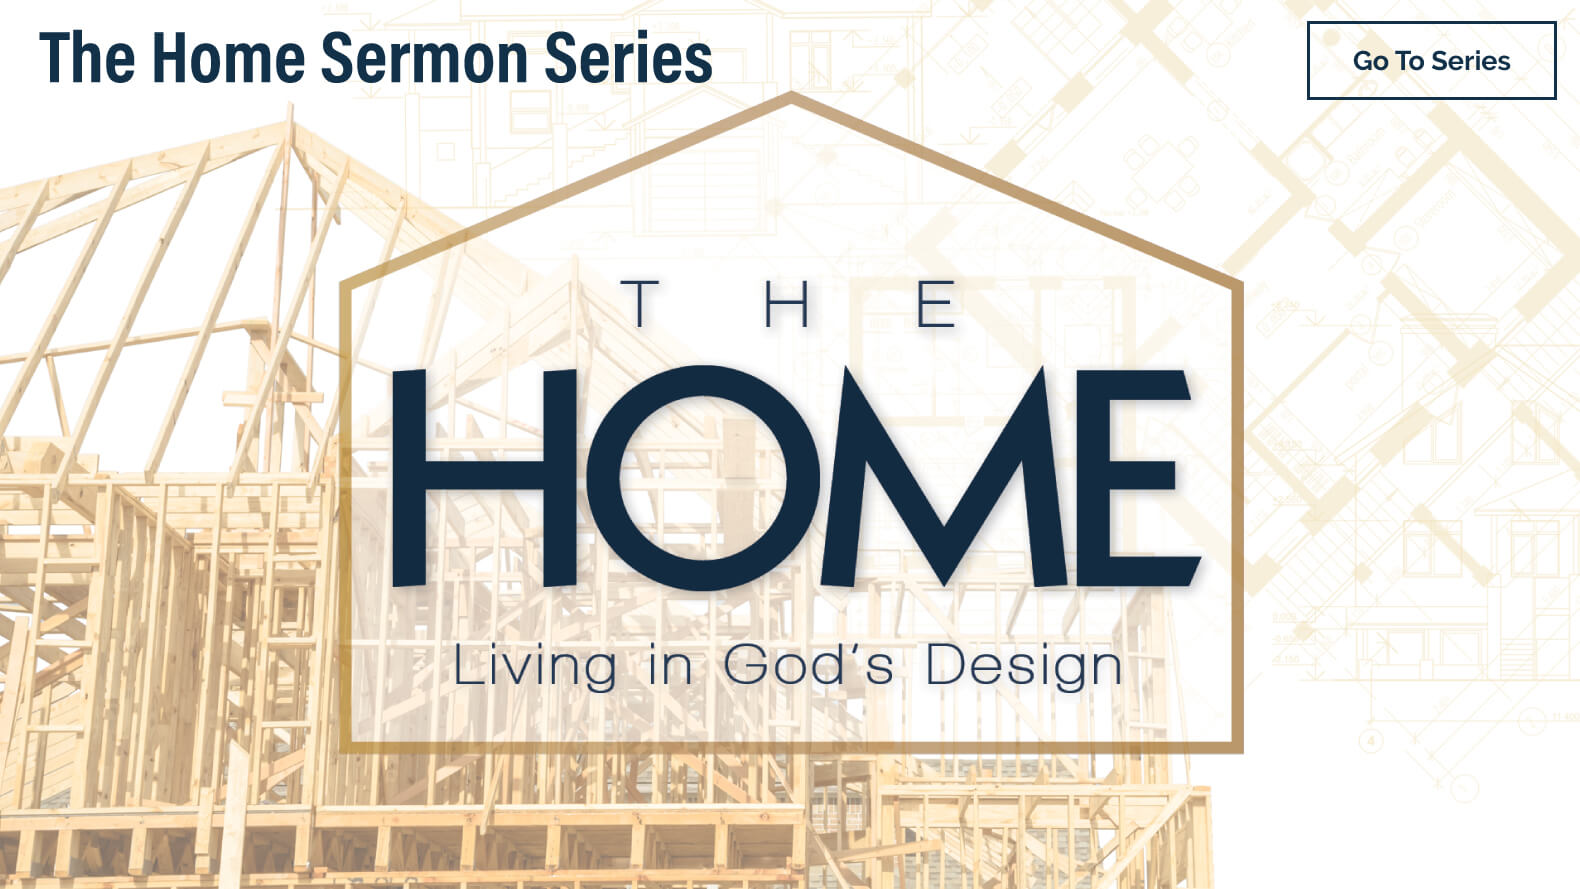 The-Home-Sermon-Series-Image